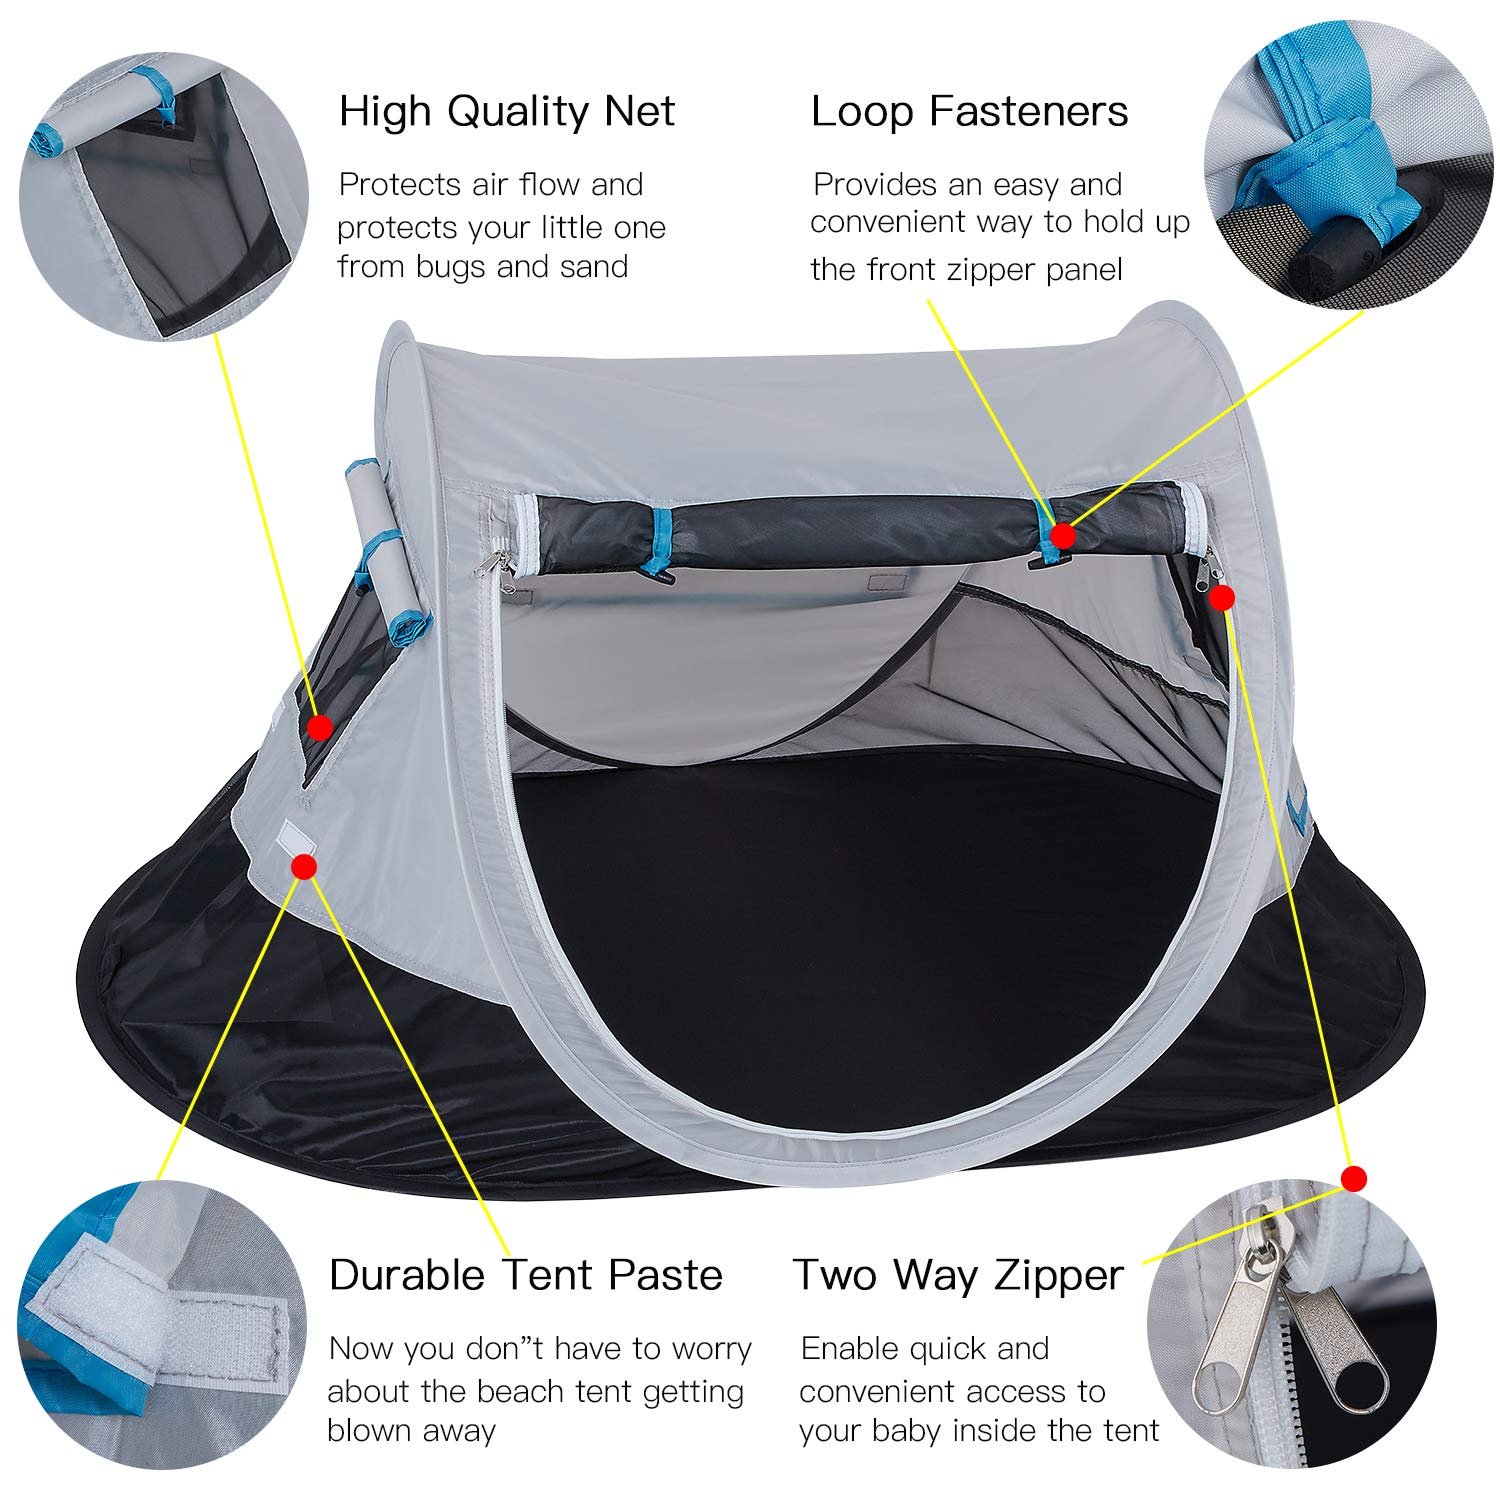 SHDIBA Portable Travel Pop up Baby Tent, Large Beach Sun Shelter Infant Tent, UPF 50+, Baby Sleep Outdoor Camping Mosquito Tent by SHDIBA (Image #2)